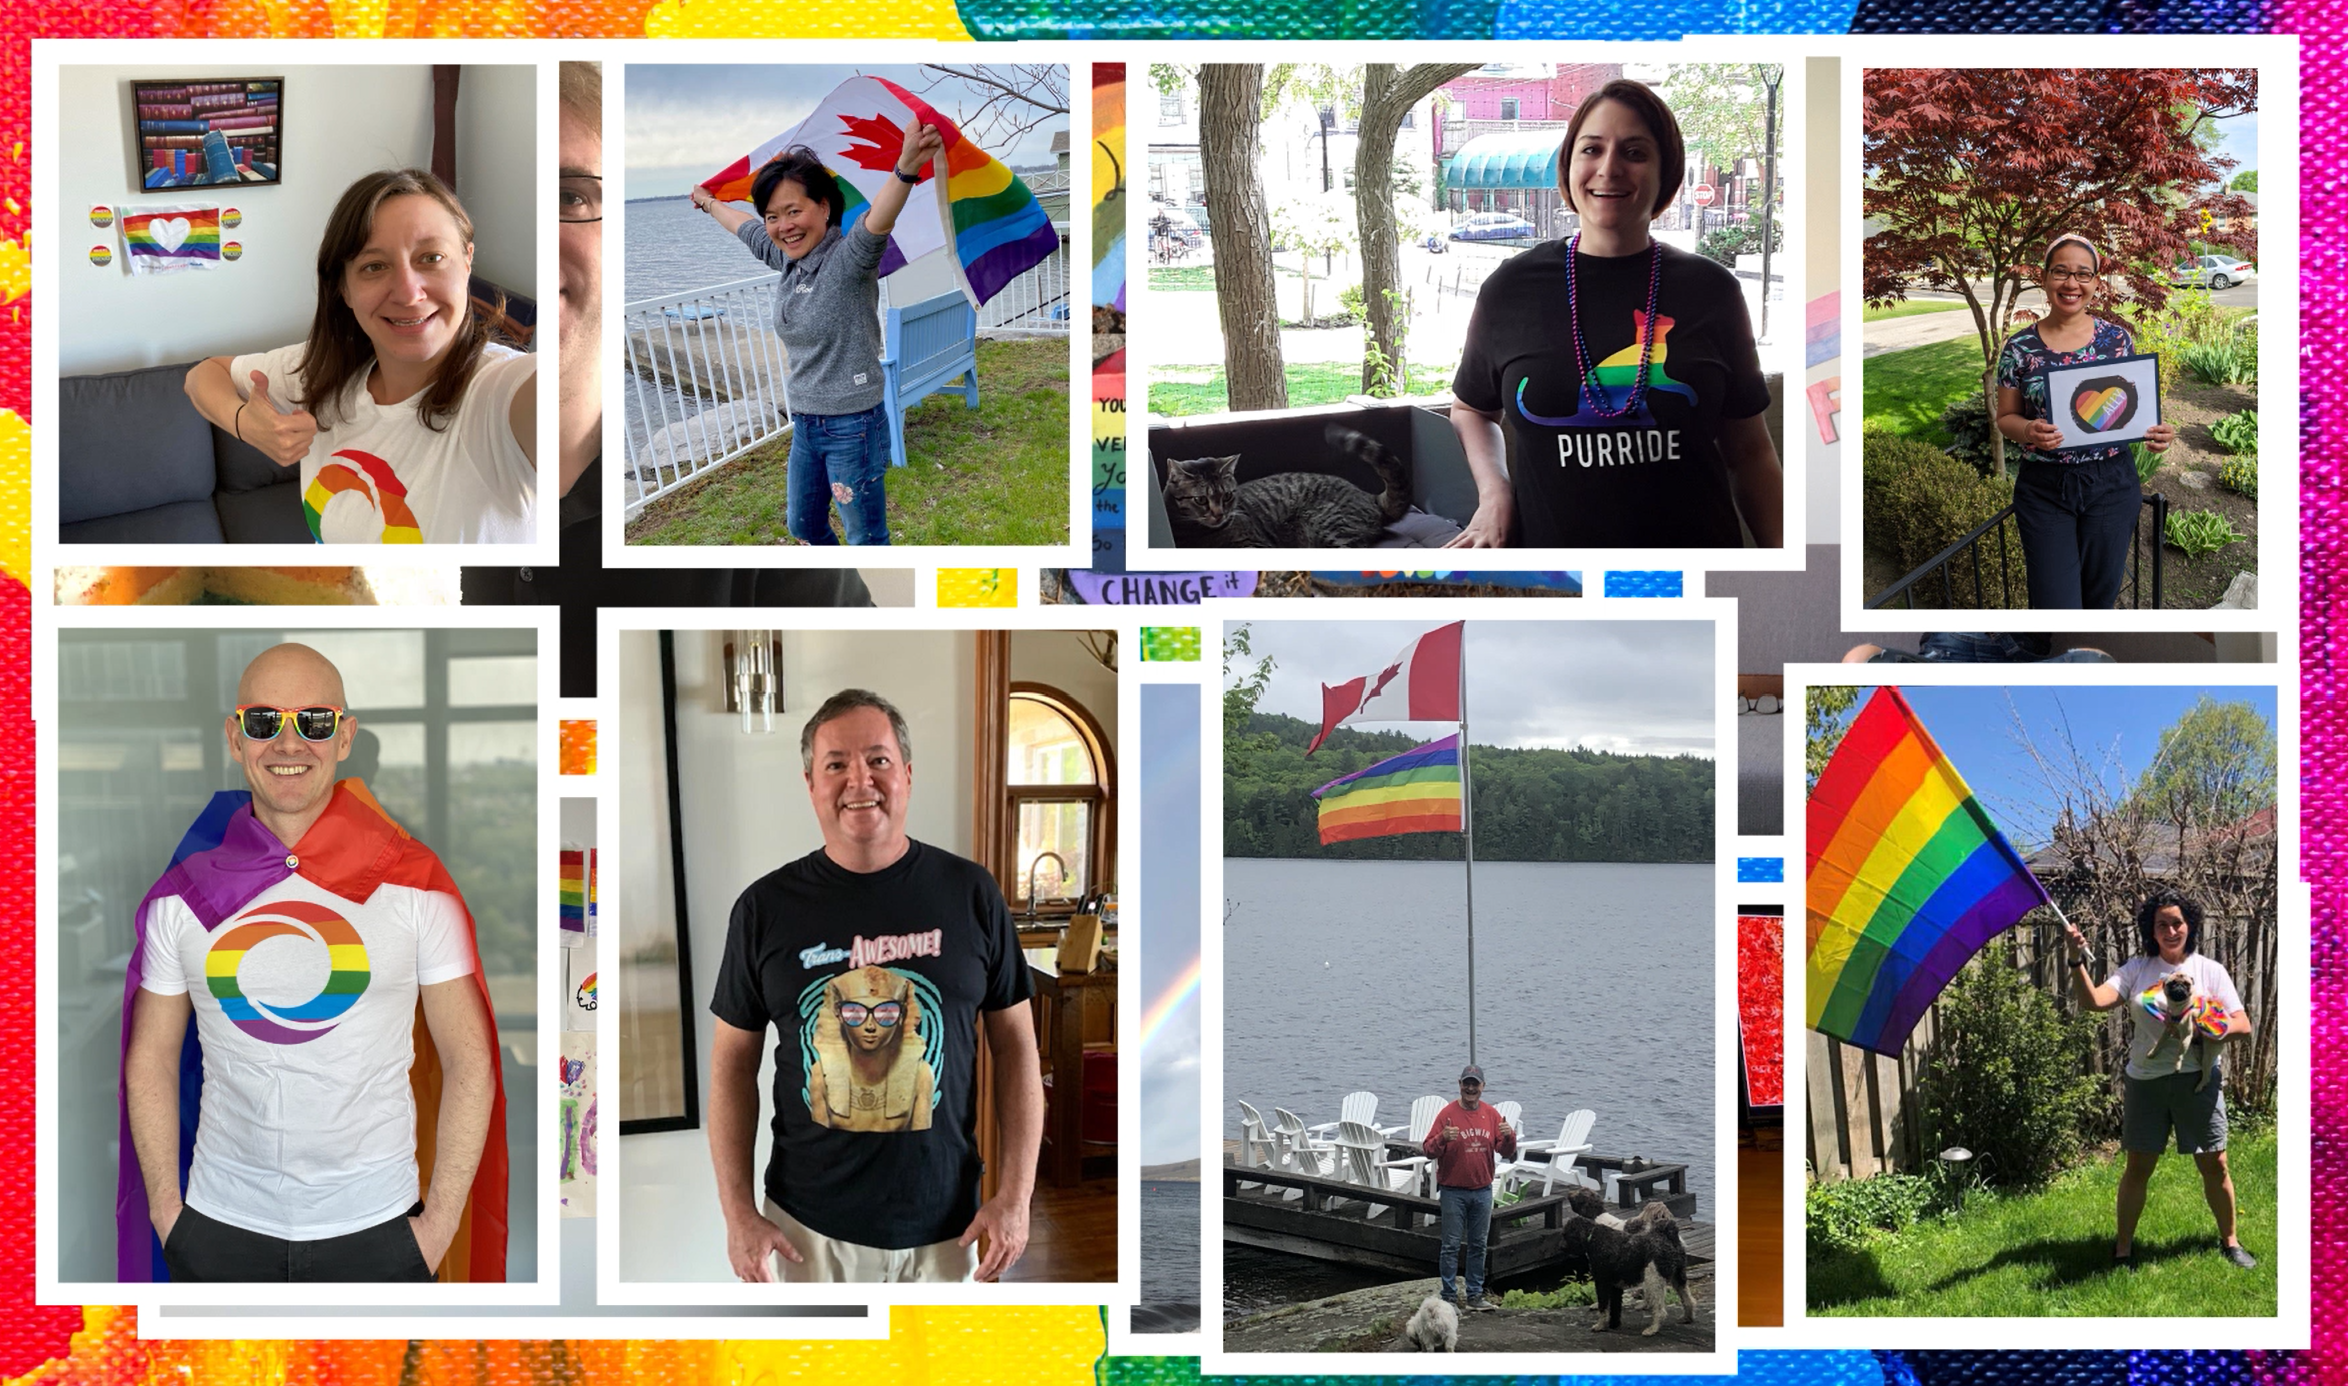 Different of image of people wearing an OMERS shirt with a rainbow O, and others holding/wearing the rainbow flag